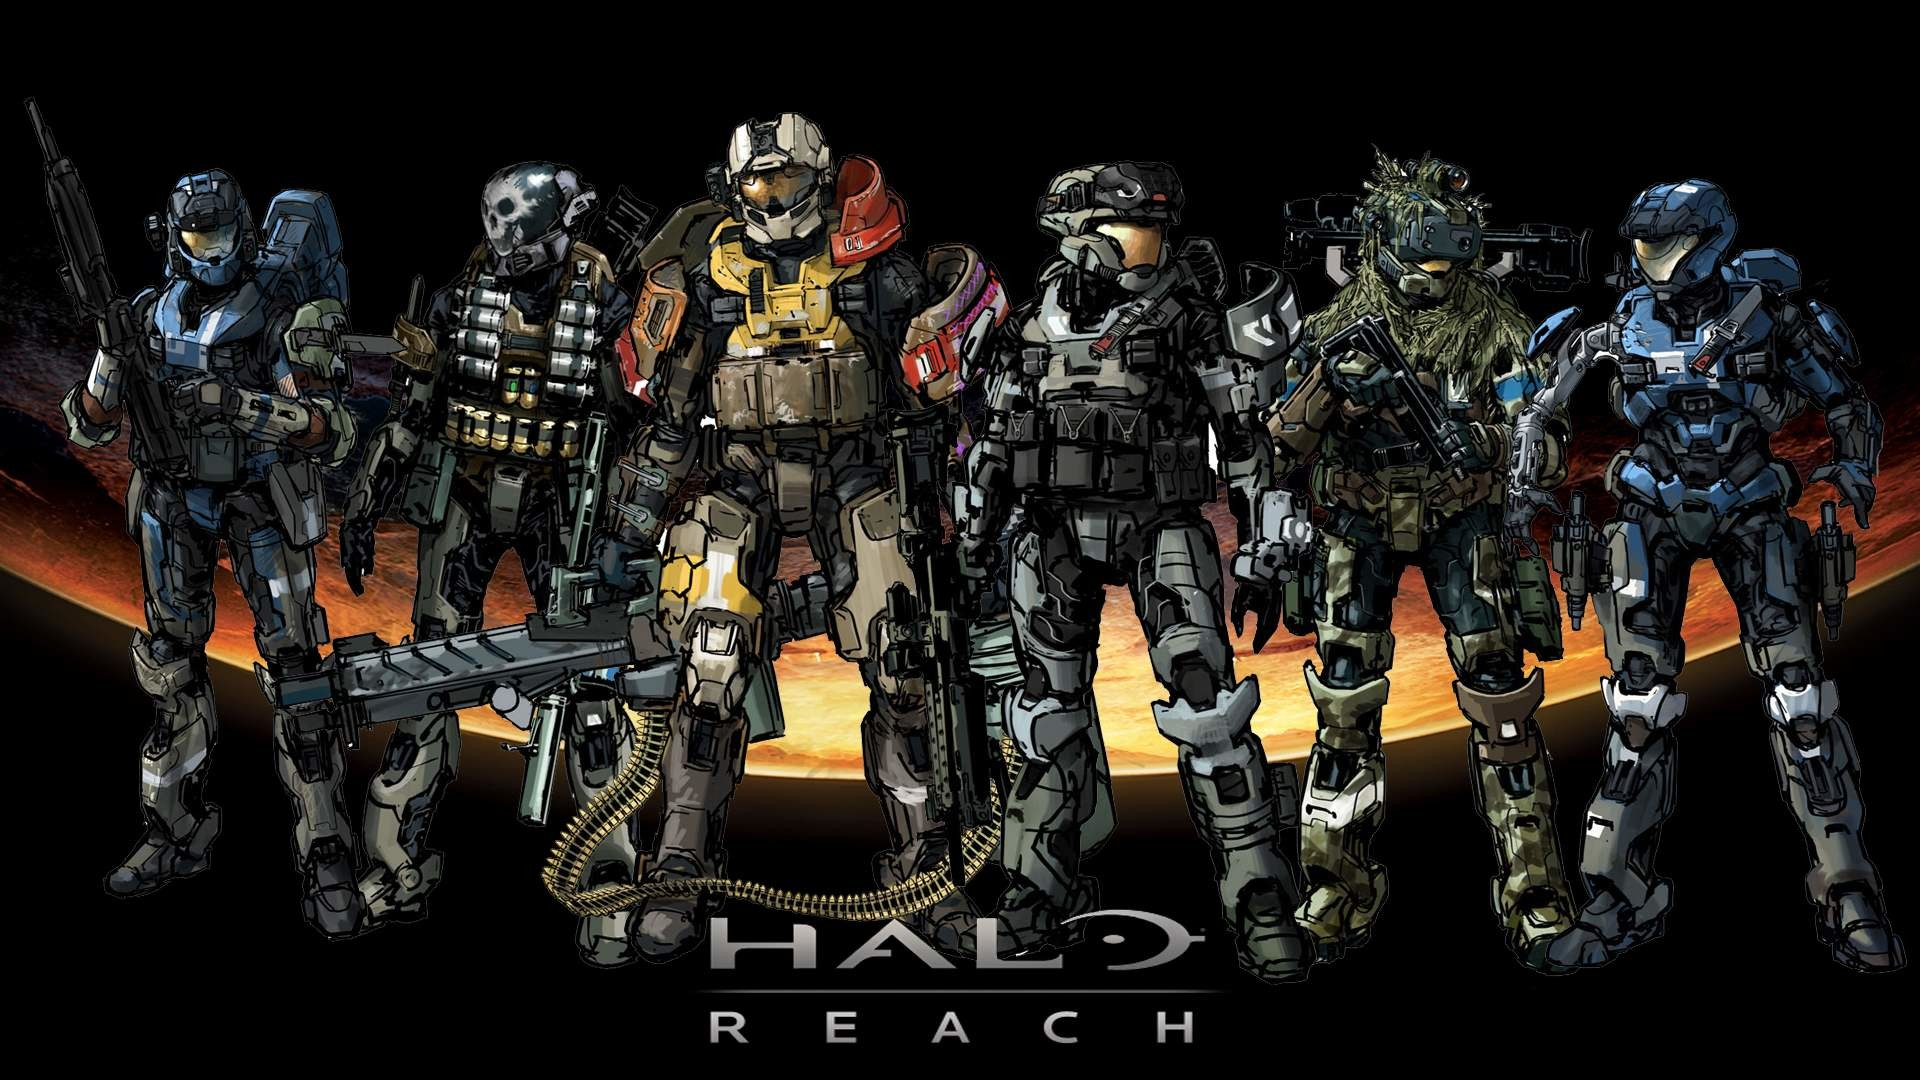 Wallpapers For > Halo Reach Noble Team Wallpaper Hd